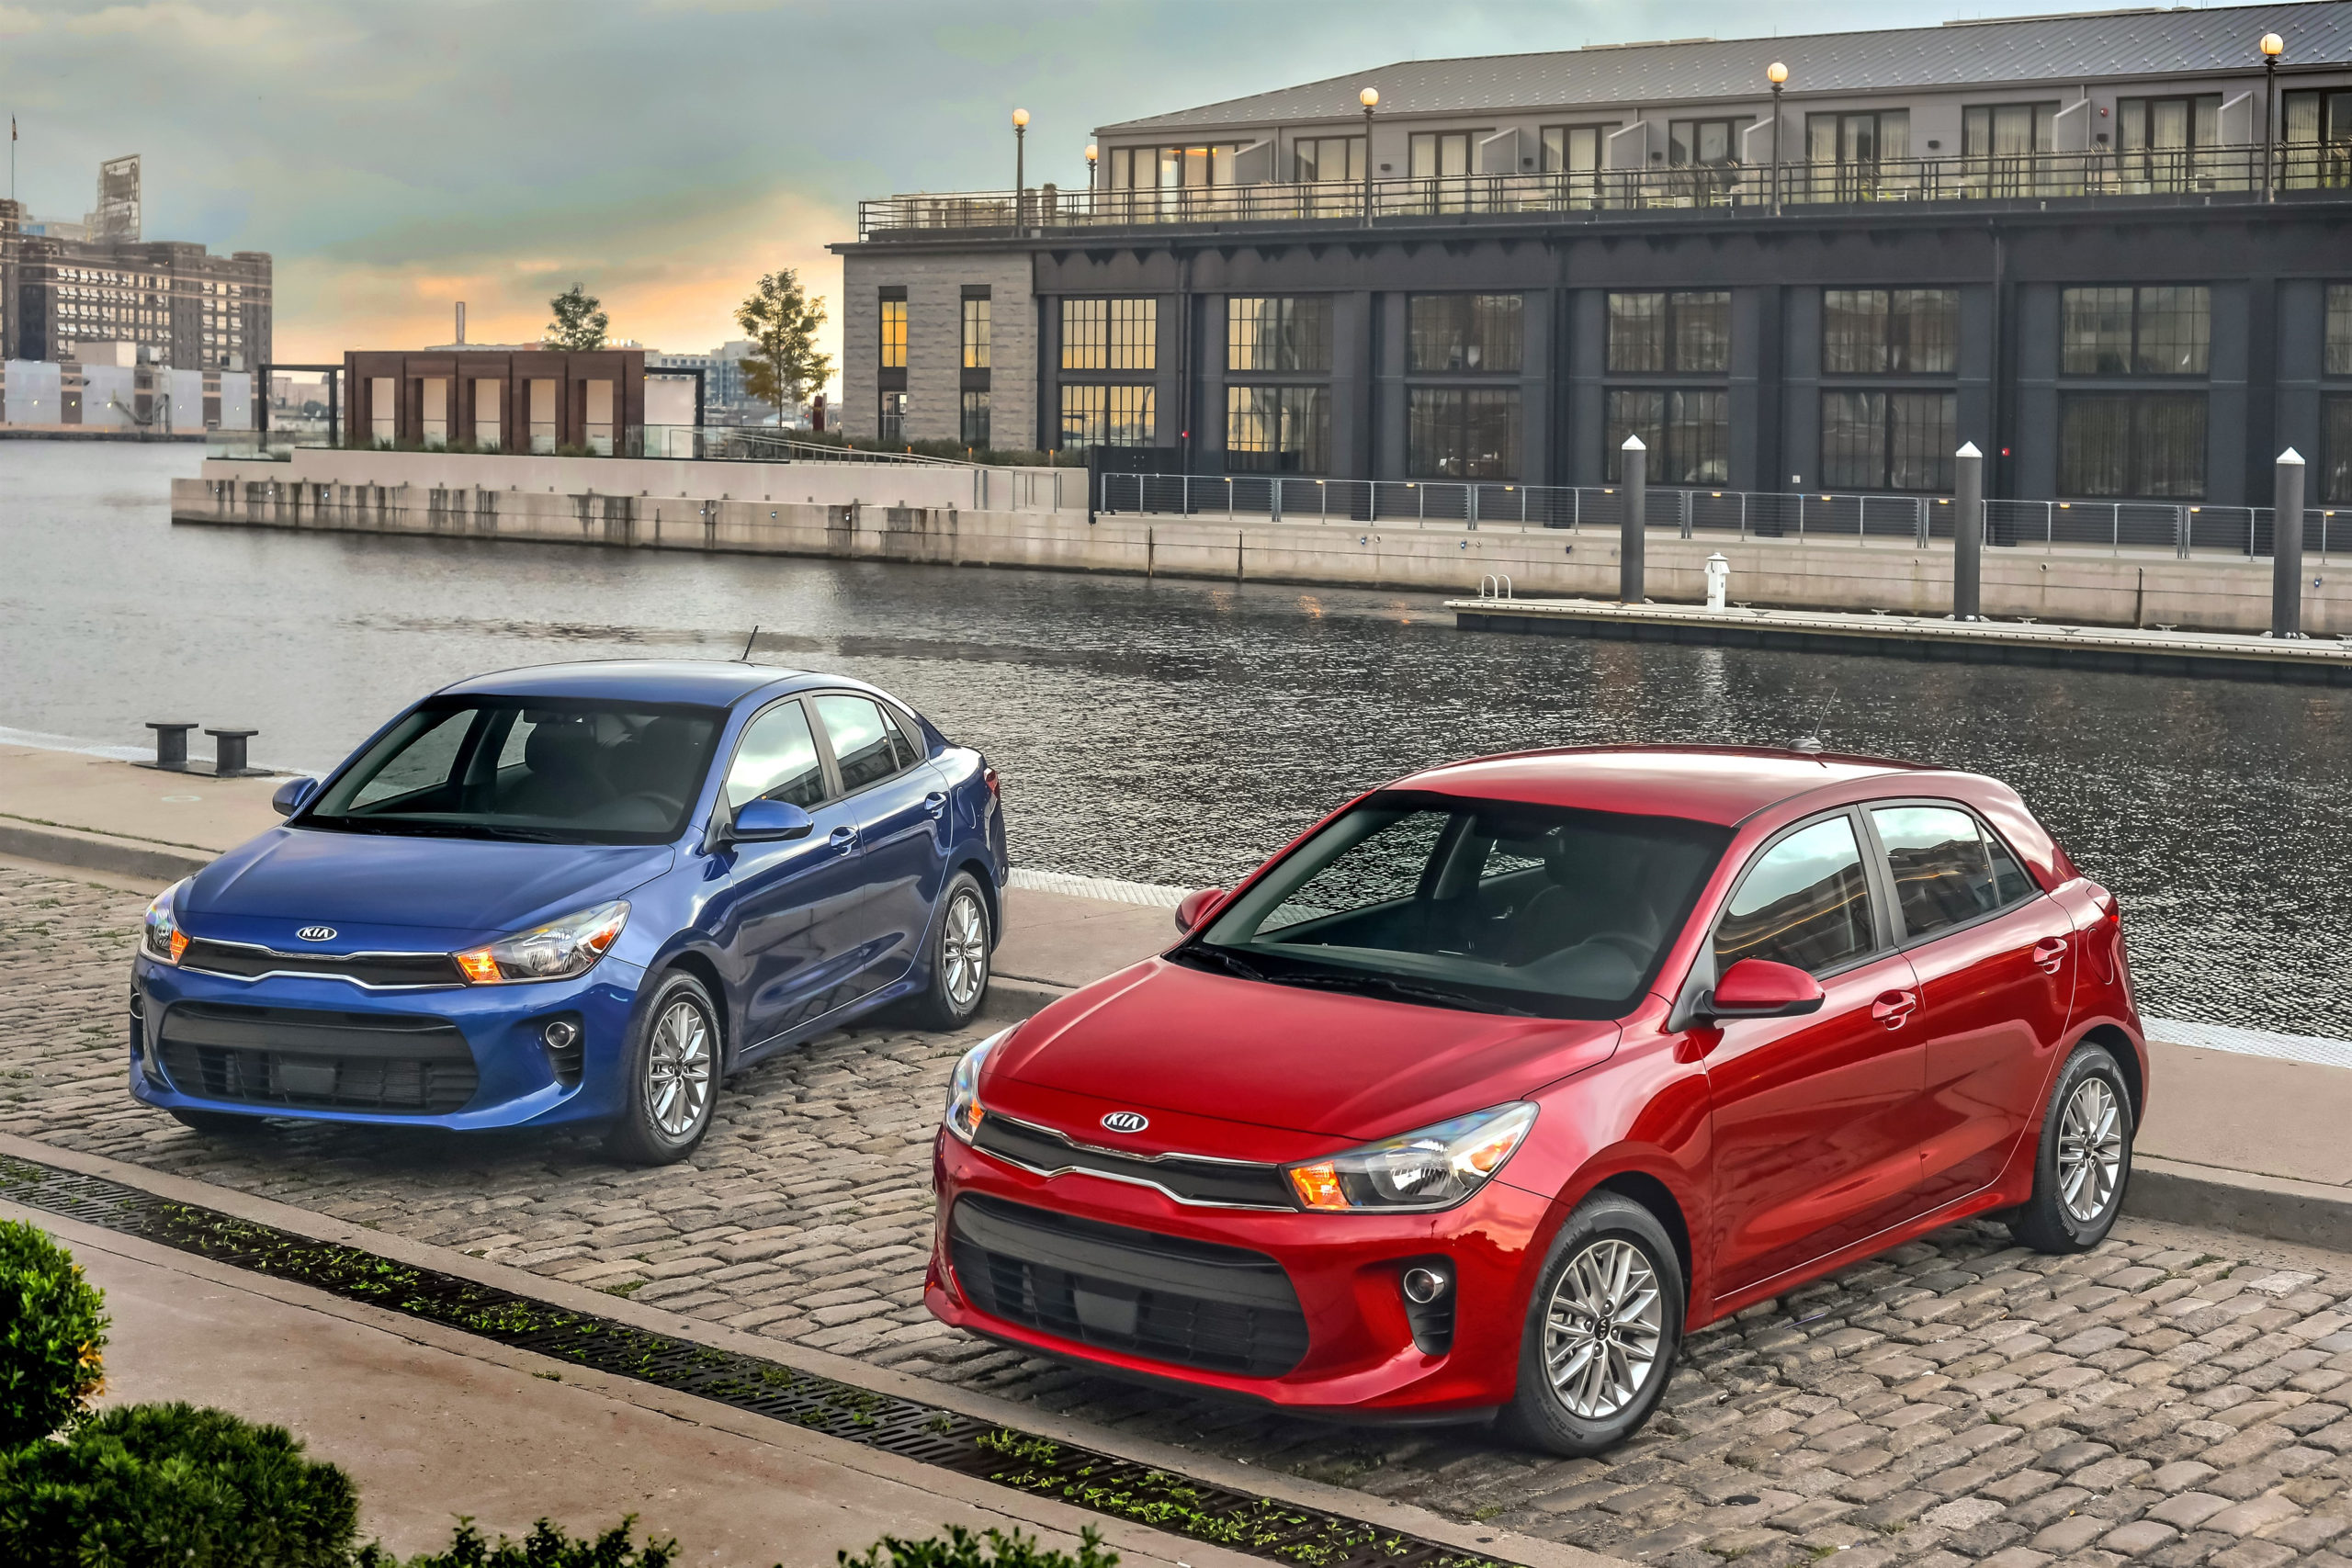 Kia's Product Line-Up Until 2022 - Korean Car Blog - 2022 Kia Forte Fe Electric Interior, Transmission Changes